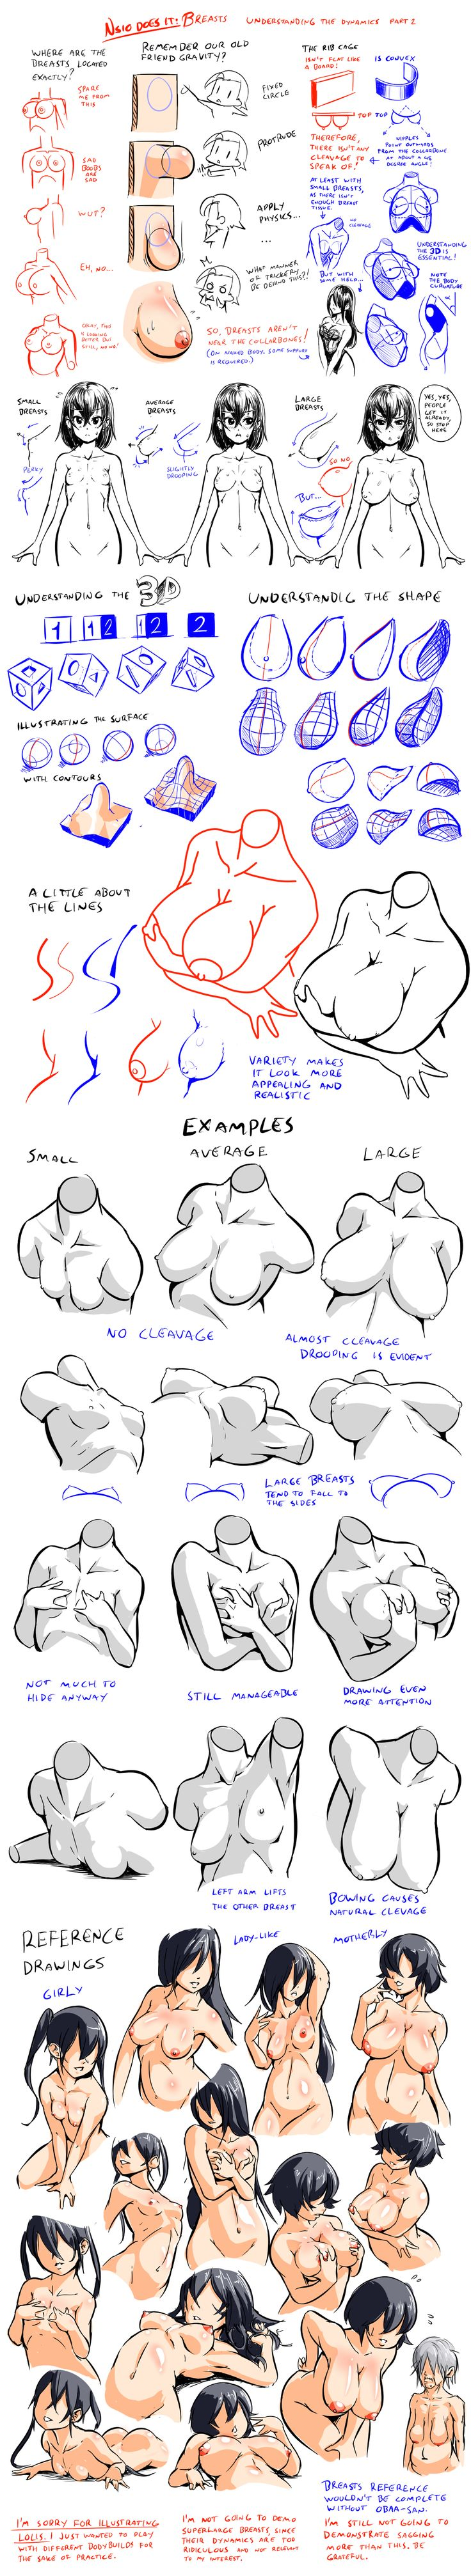 Breasts - Understanding the Dynamics 2 by Nsio on deviantART ✤ || CHARACTER DESIGN REFERENCES | キャラクターデザイン | çizgi film • Find more at https://www.facebook.com/CharacterDesignReferences & http://www.pinterest.com/characterdesigh if you're looking for: bande dessinée, dessin animé #animation #banda #desenhada #toons #manga #BD #historieta #sketch #how #to #draw #strip #fumetto #settei #fumetti #manhwa #cartoni #animati #comics #cartoon || ✤